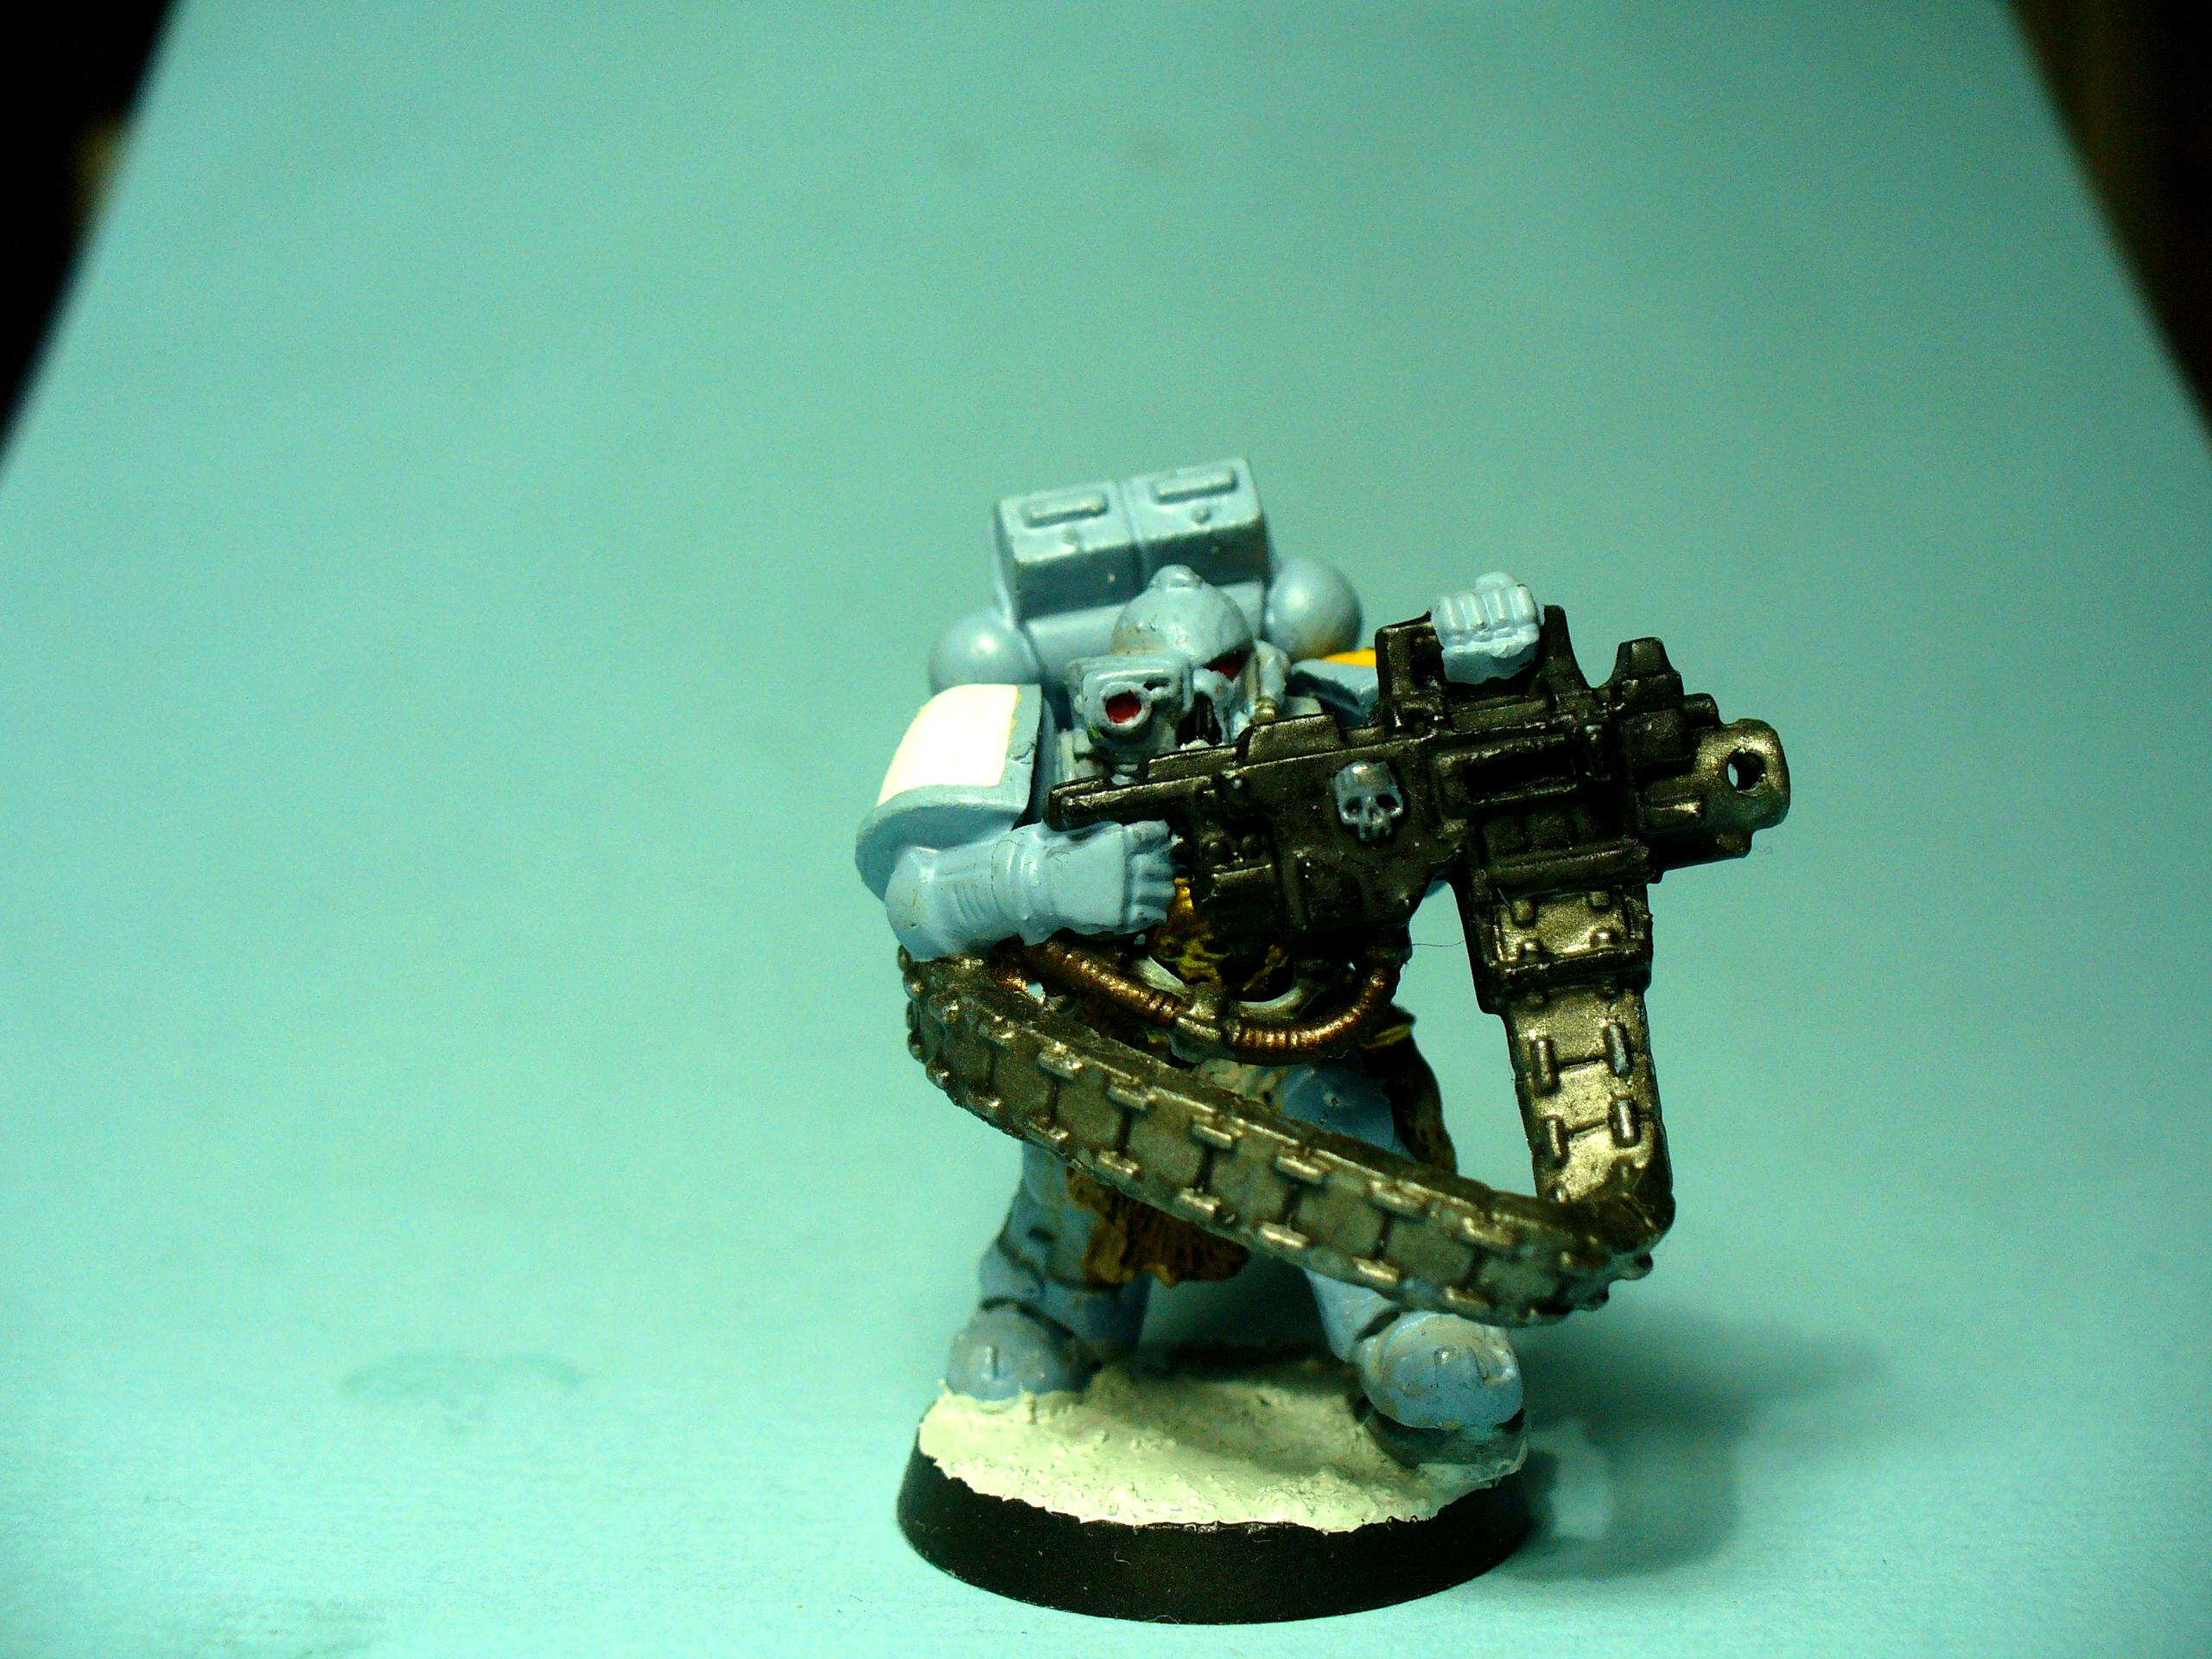 Classic Miniature, Conversion, Devastator, Space Wolves, Warhammer 40,000